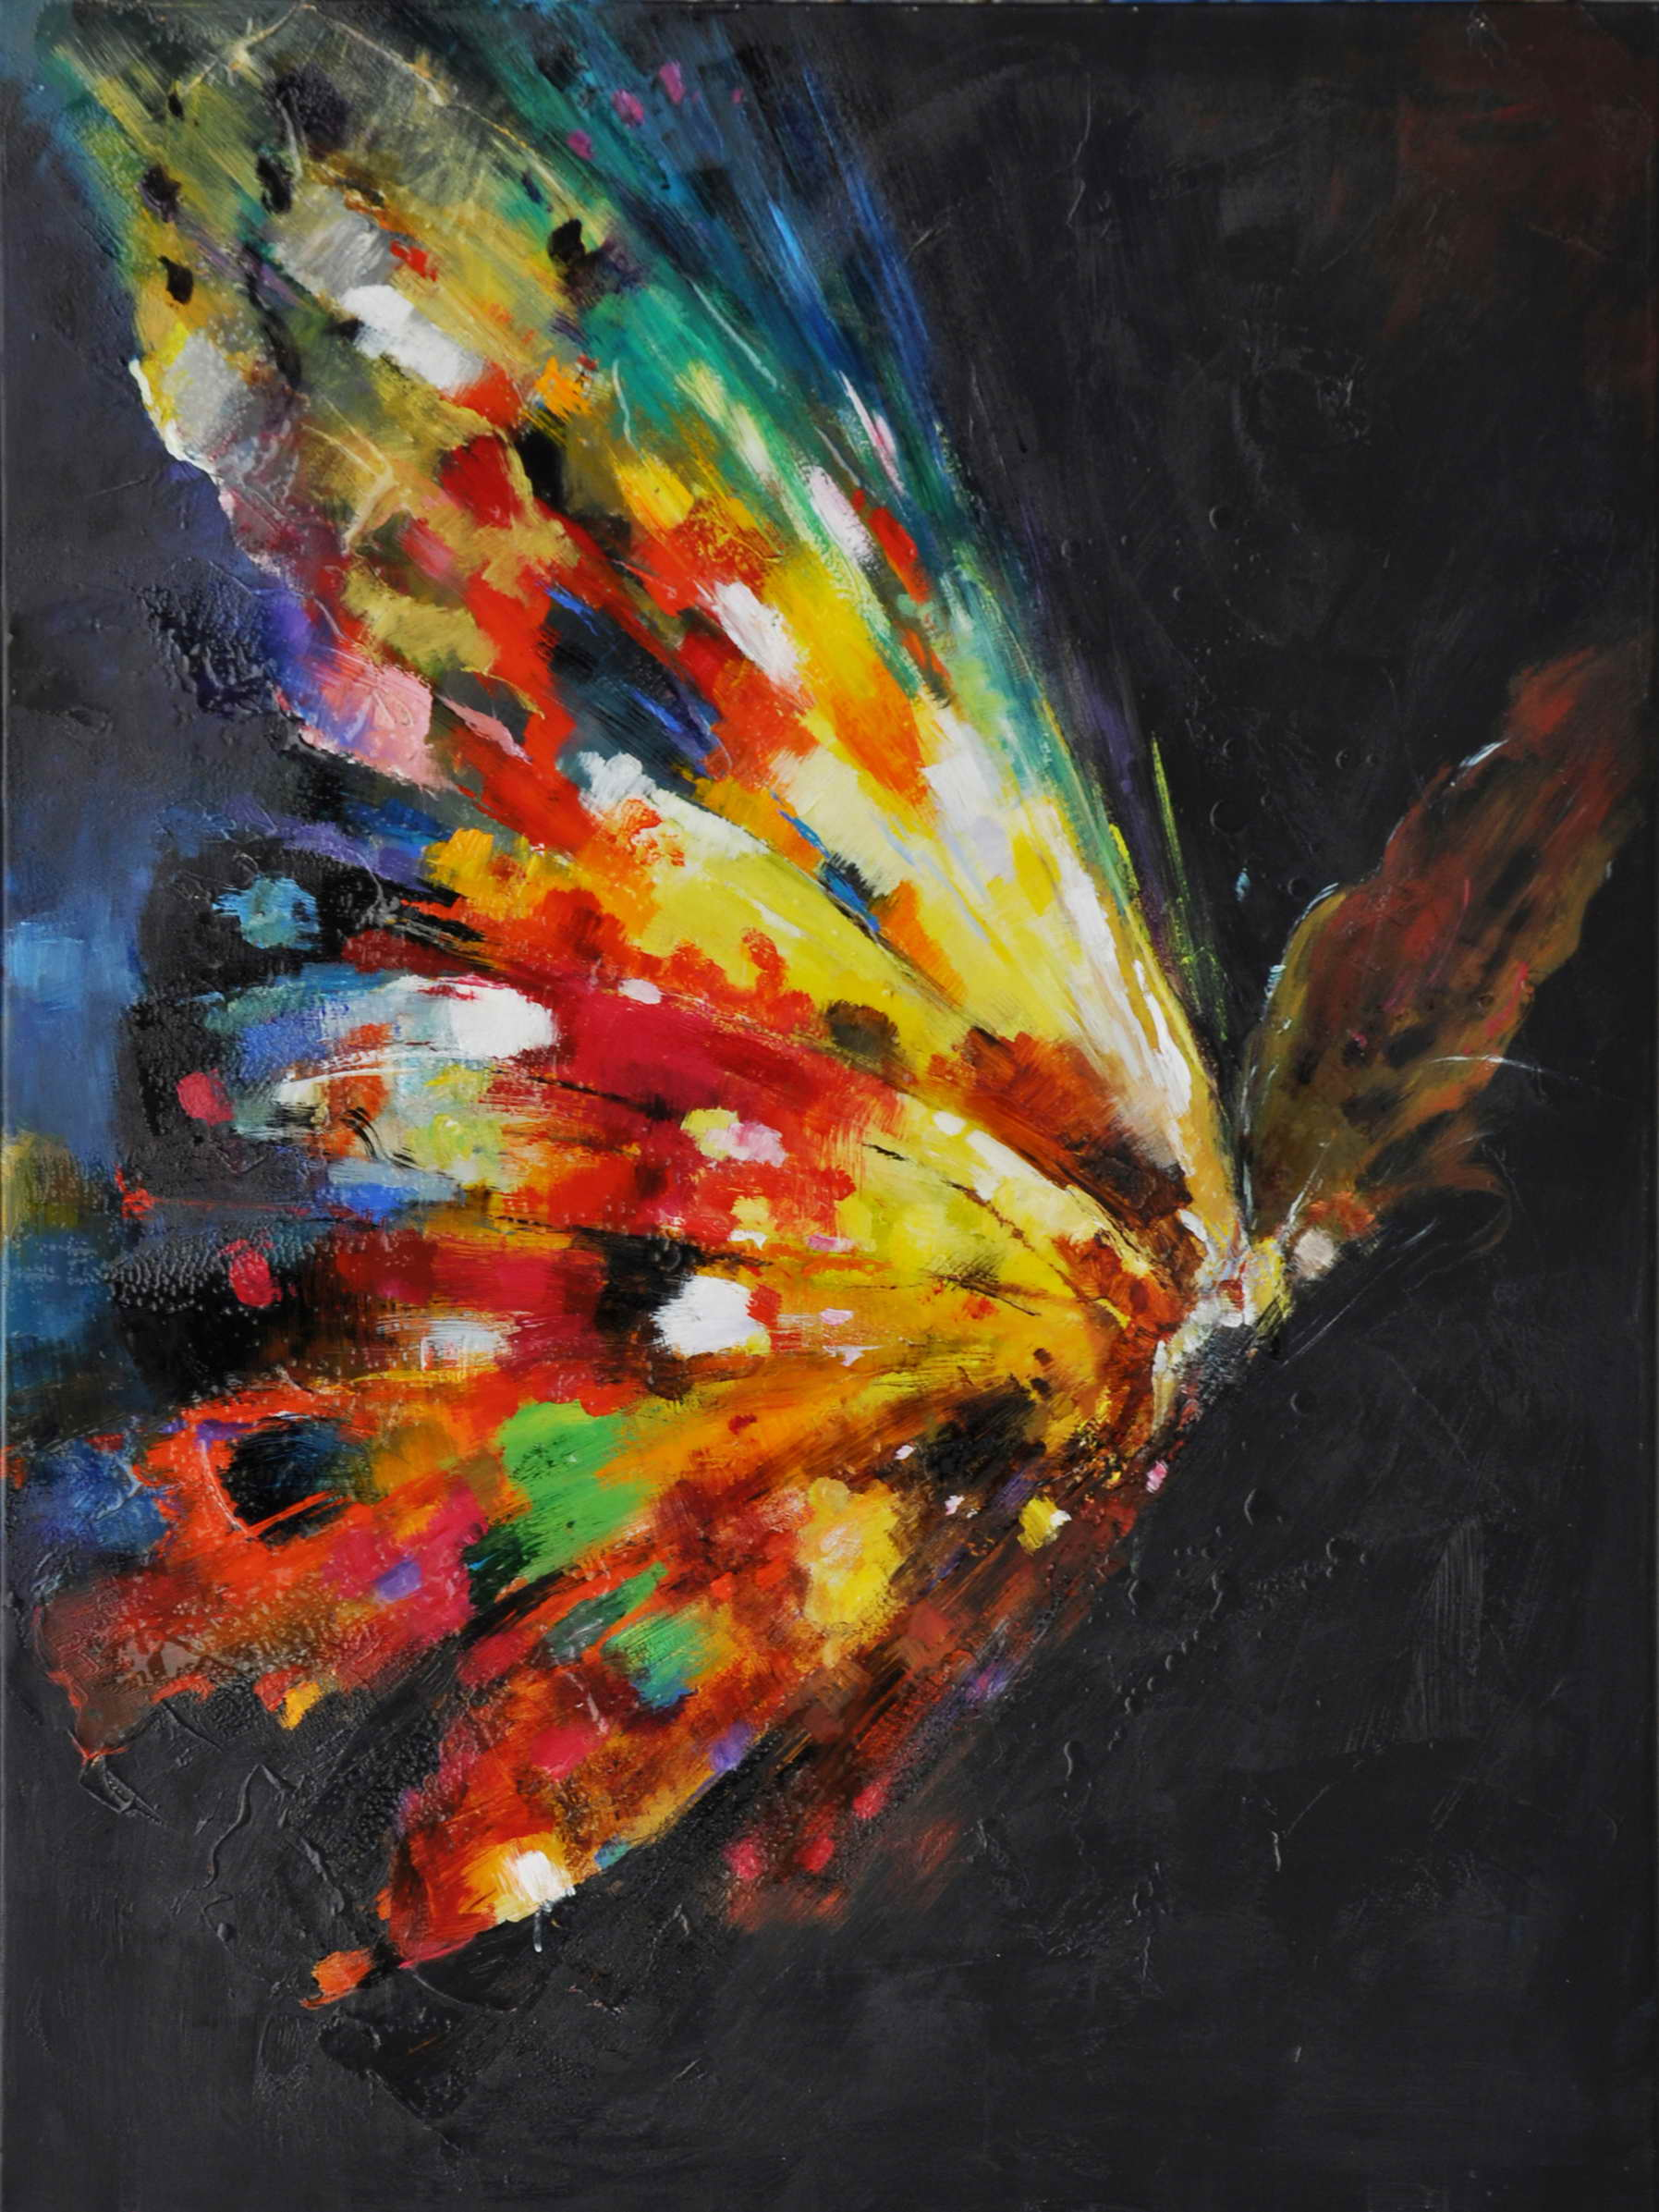 Find butterfly flower Stock Images in HD and millions of other royaltyfree stock photos illustrations and vectors in the Shutterstock collection Thousands of new